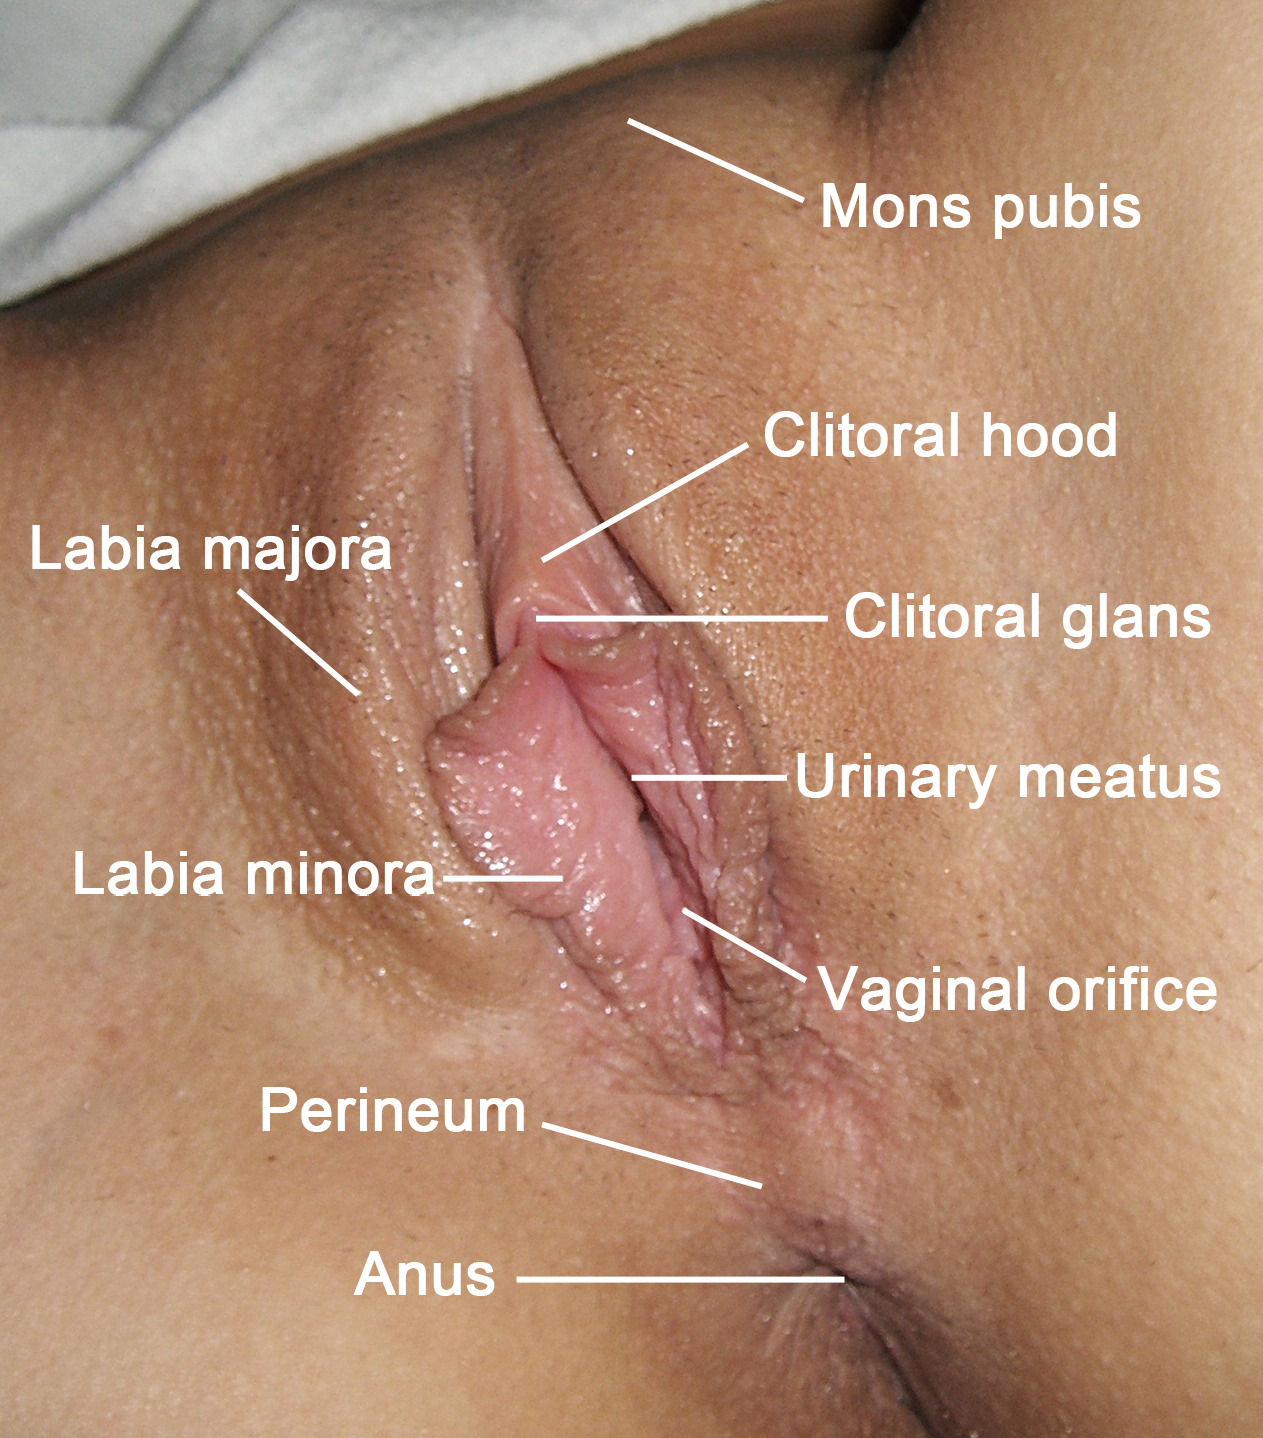 http://upload.wikimedia.org/wikipedia/commons/b/b7/Vulva_labeled_english.jpg